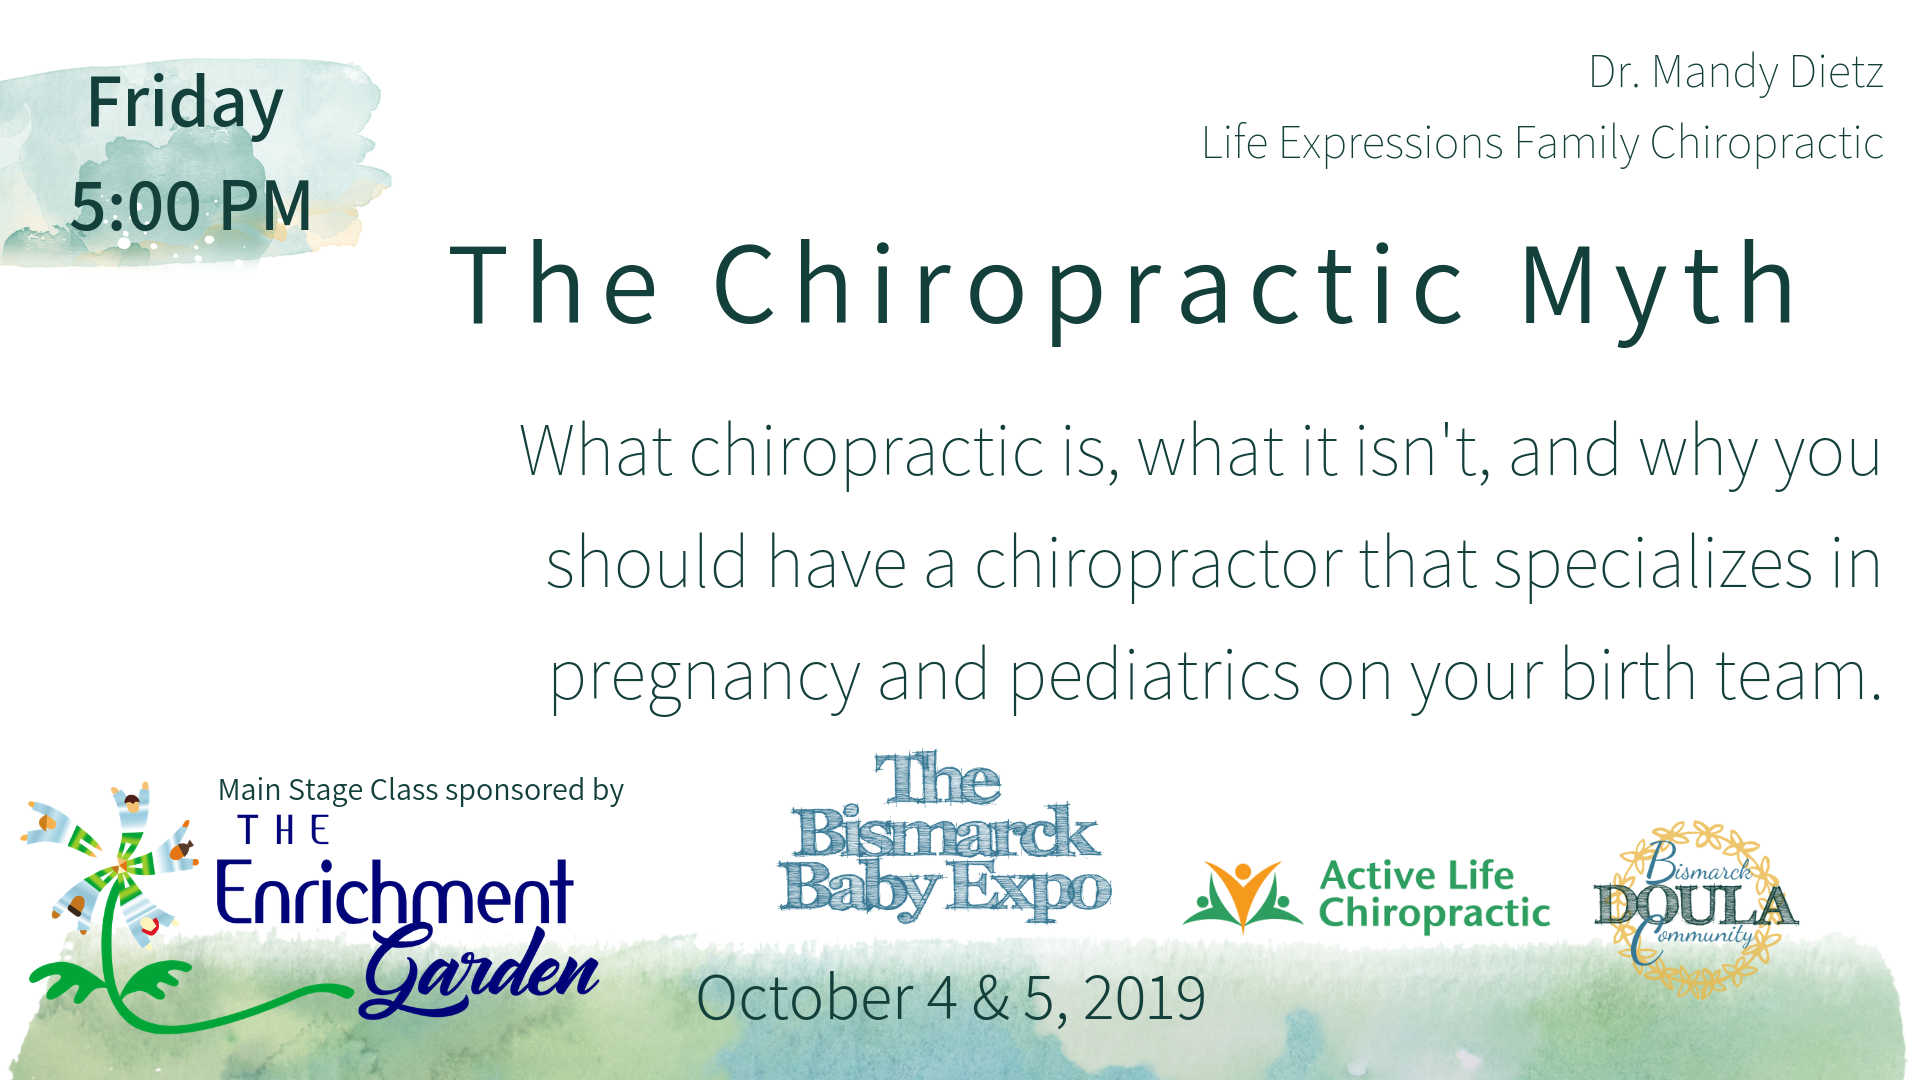 Life Expressions Family Chiropractic